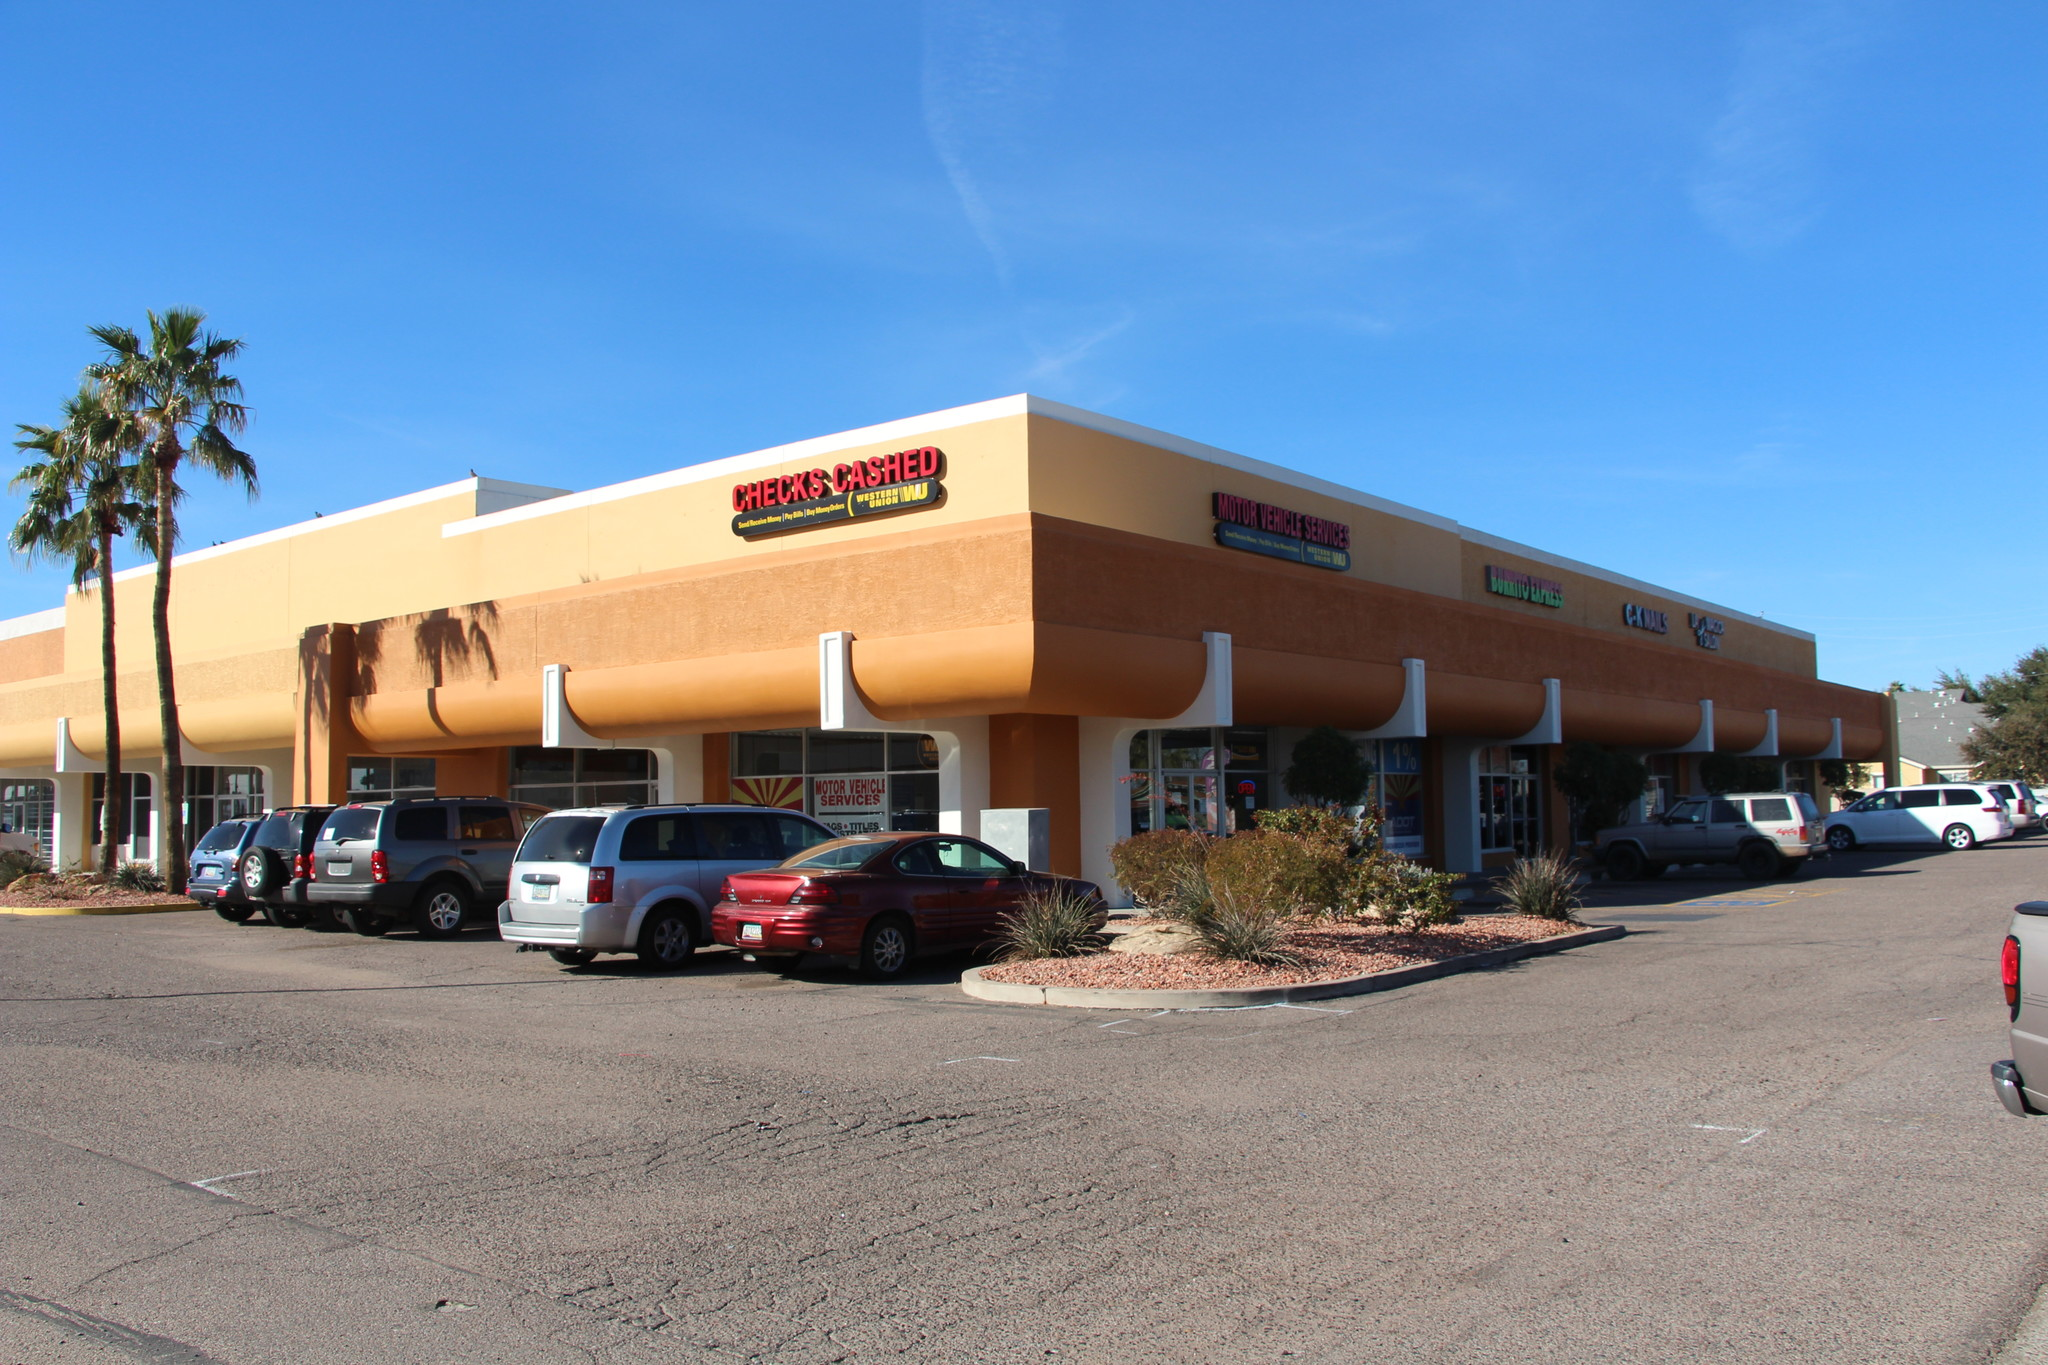 1212 W University Dr, Mesa AZ 85201 Retail Space